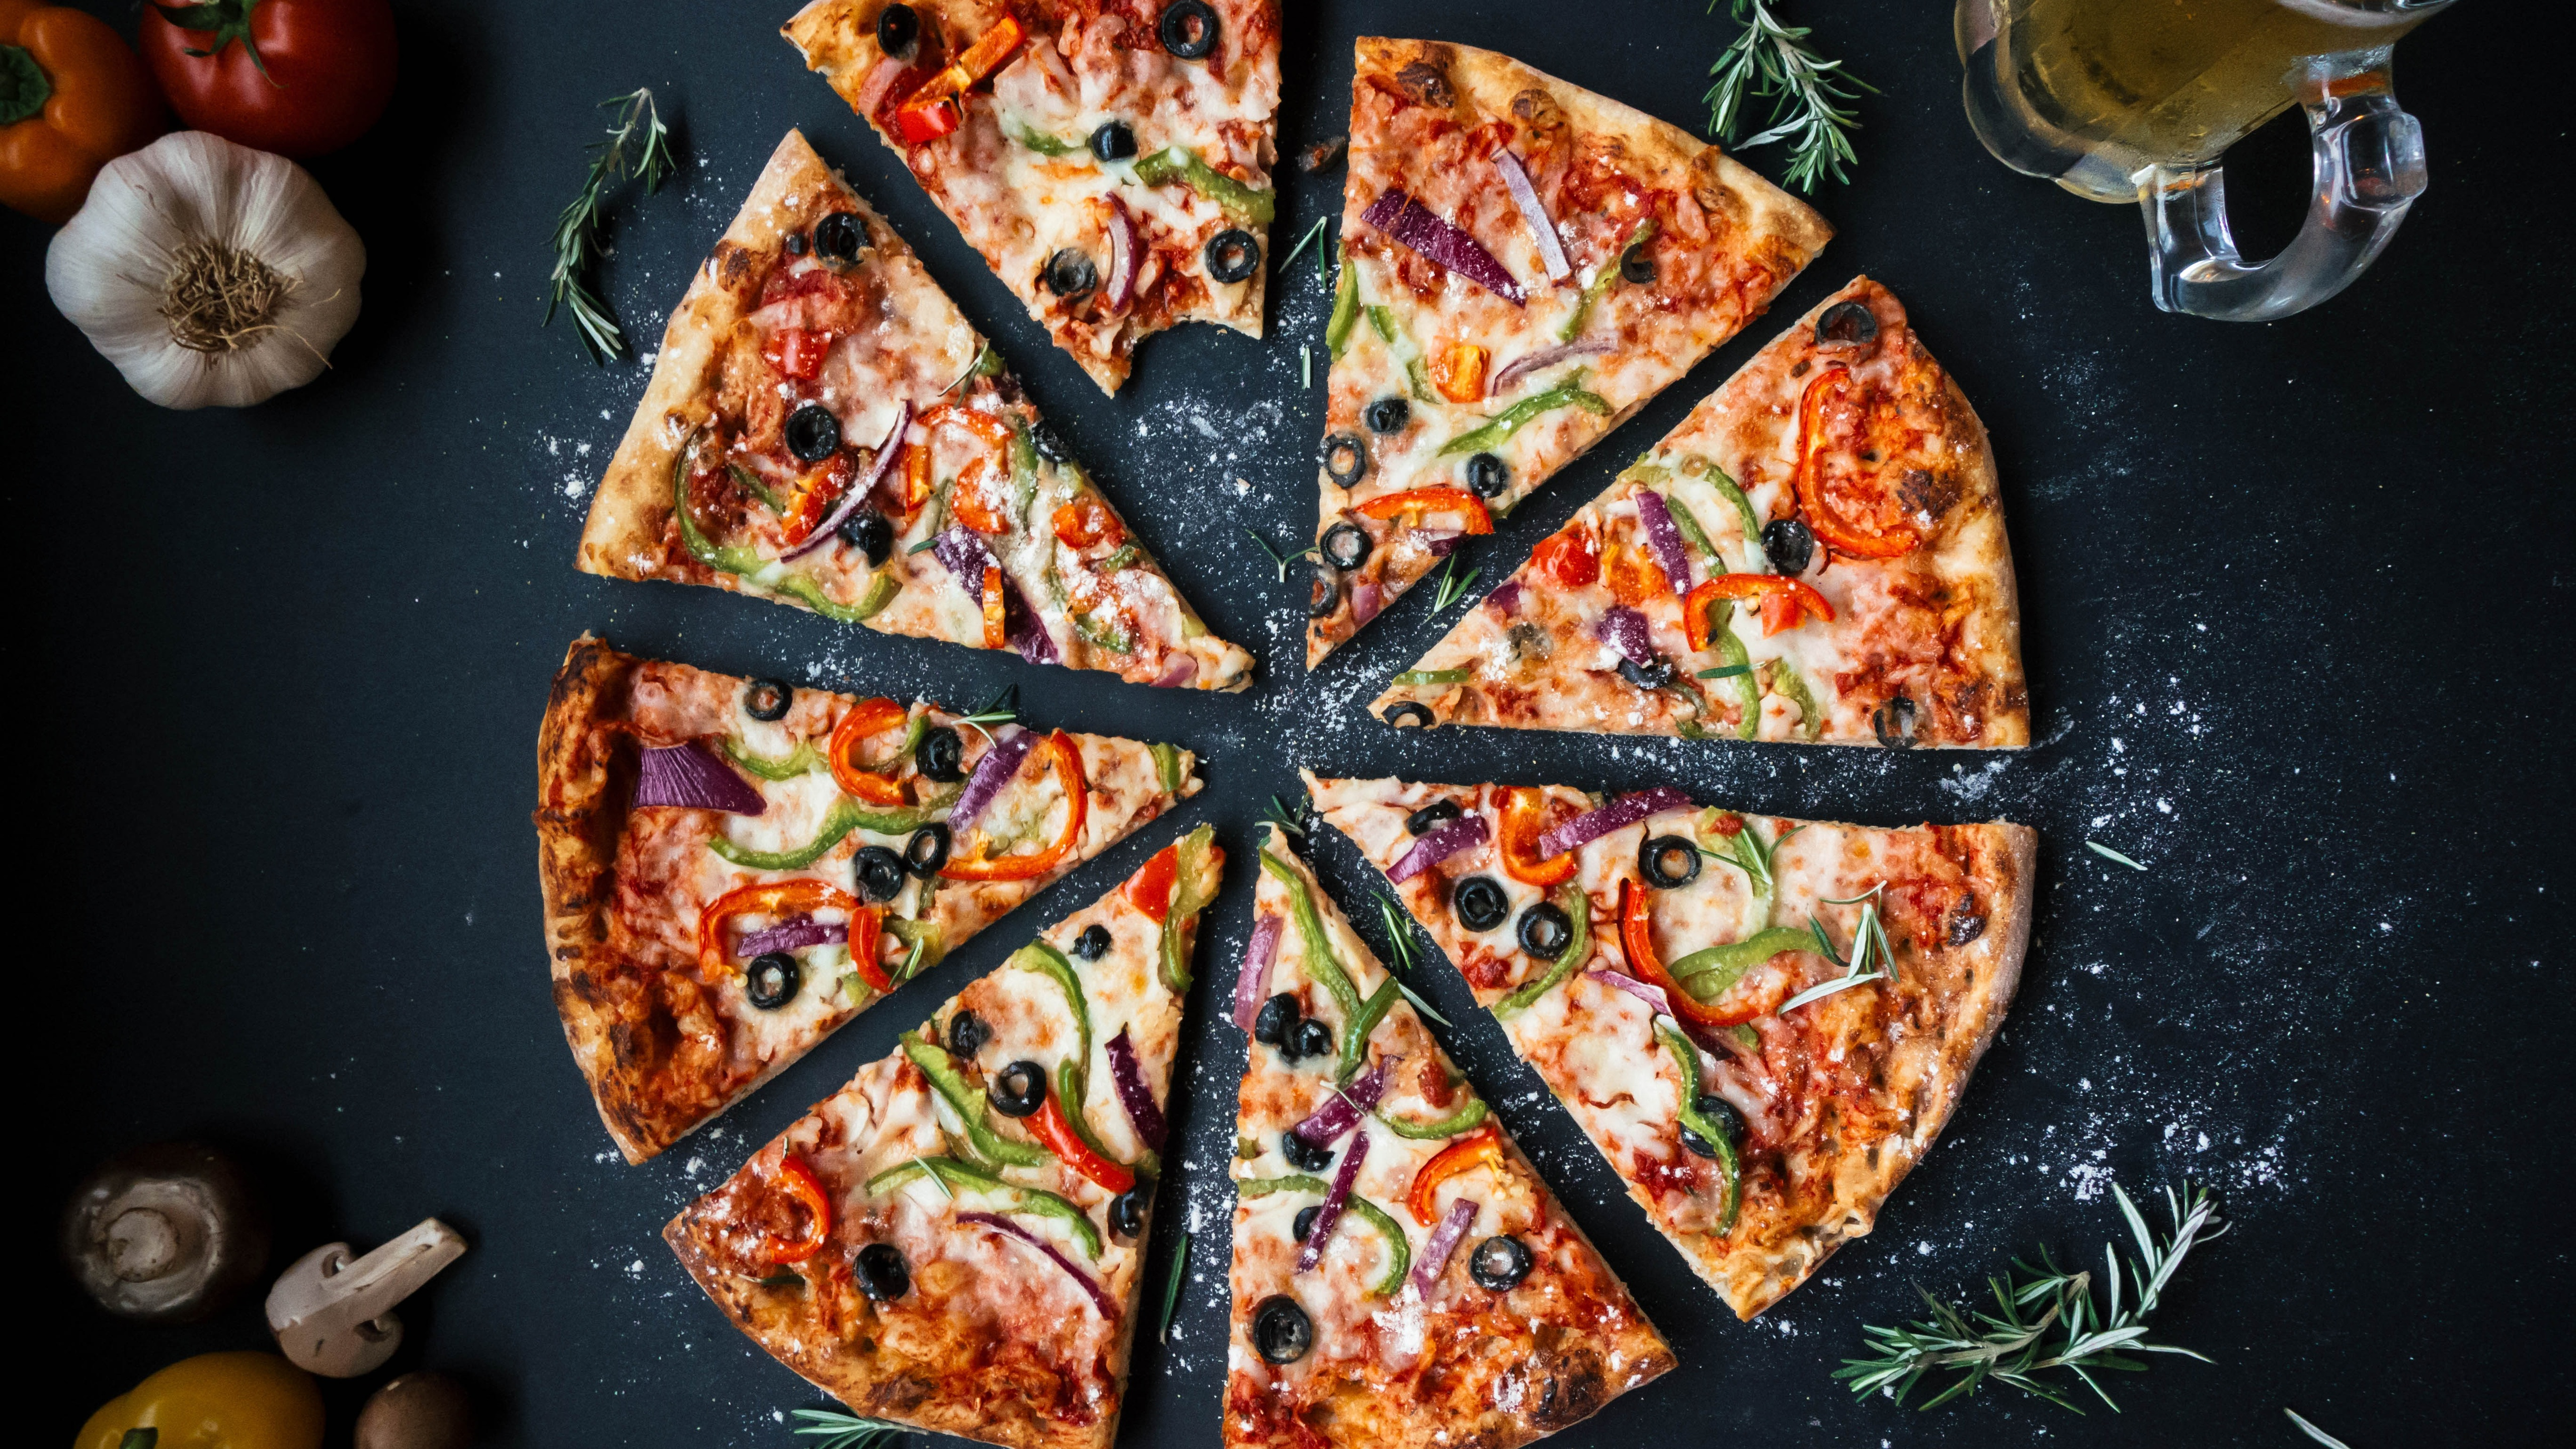 pizza-baked-chesse-spicy-7t.jpg